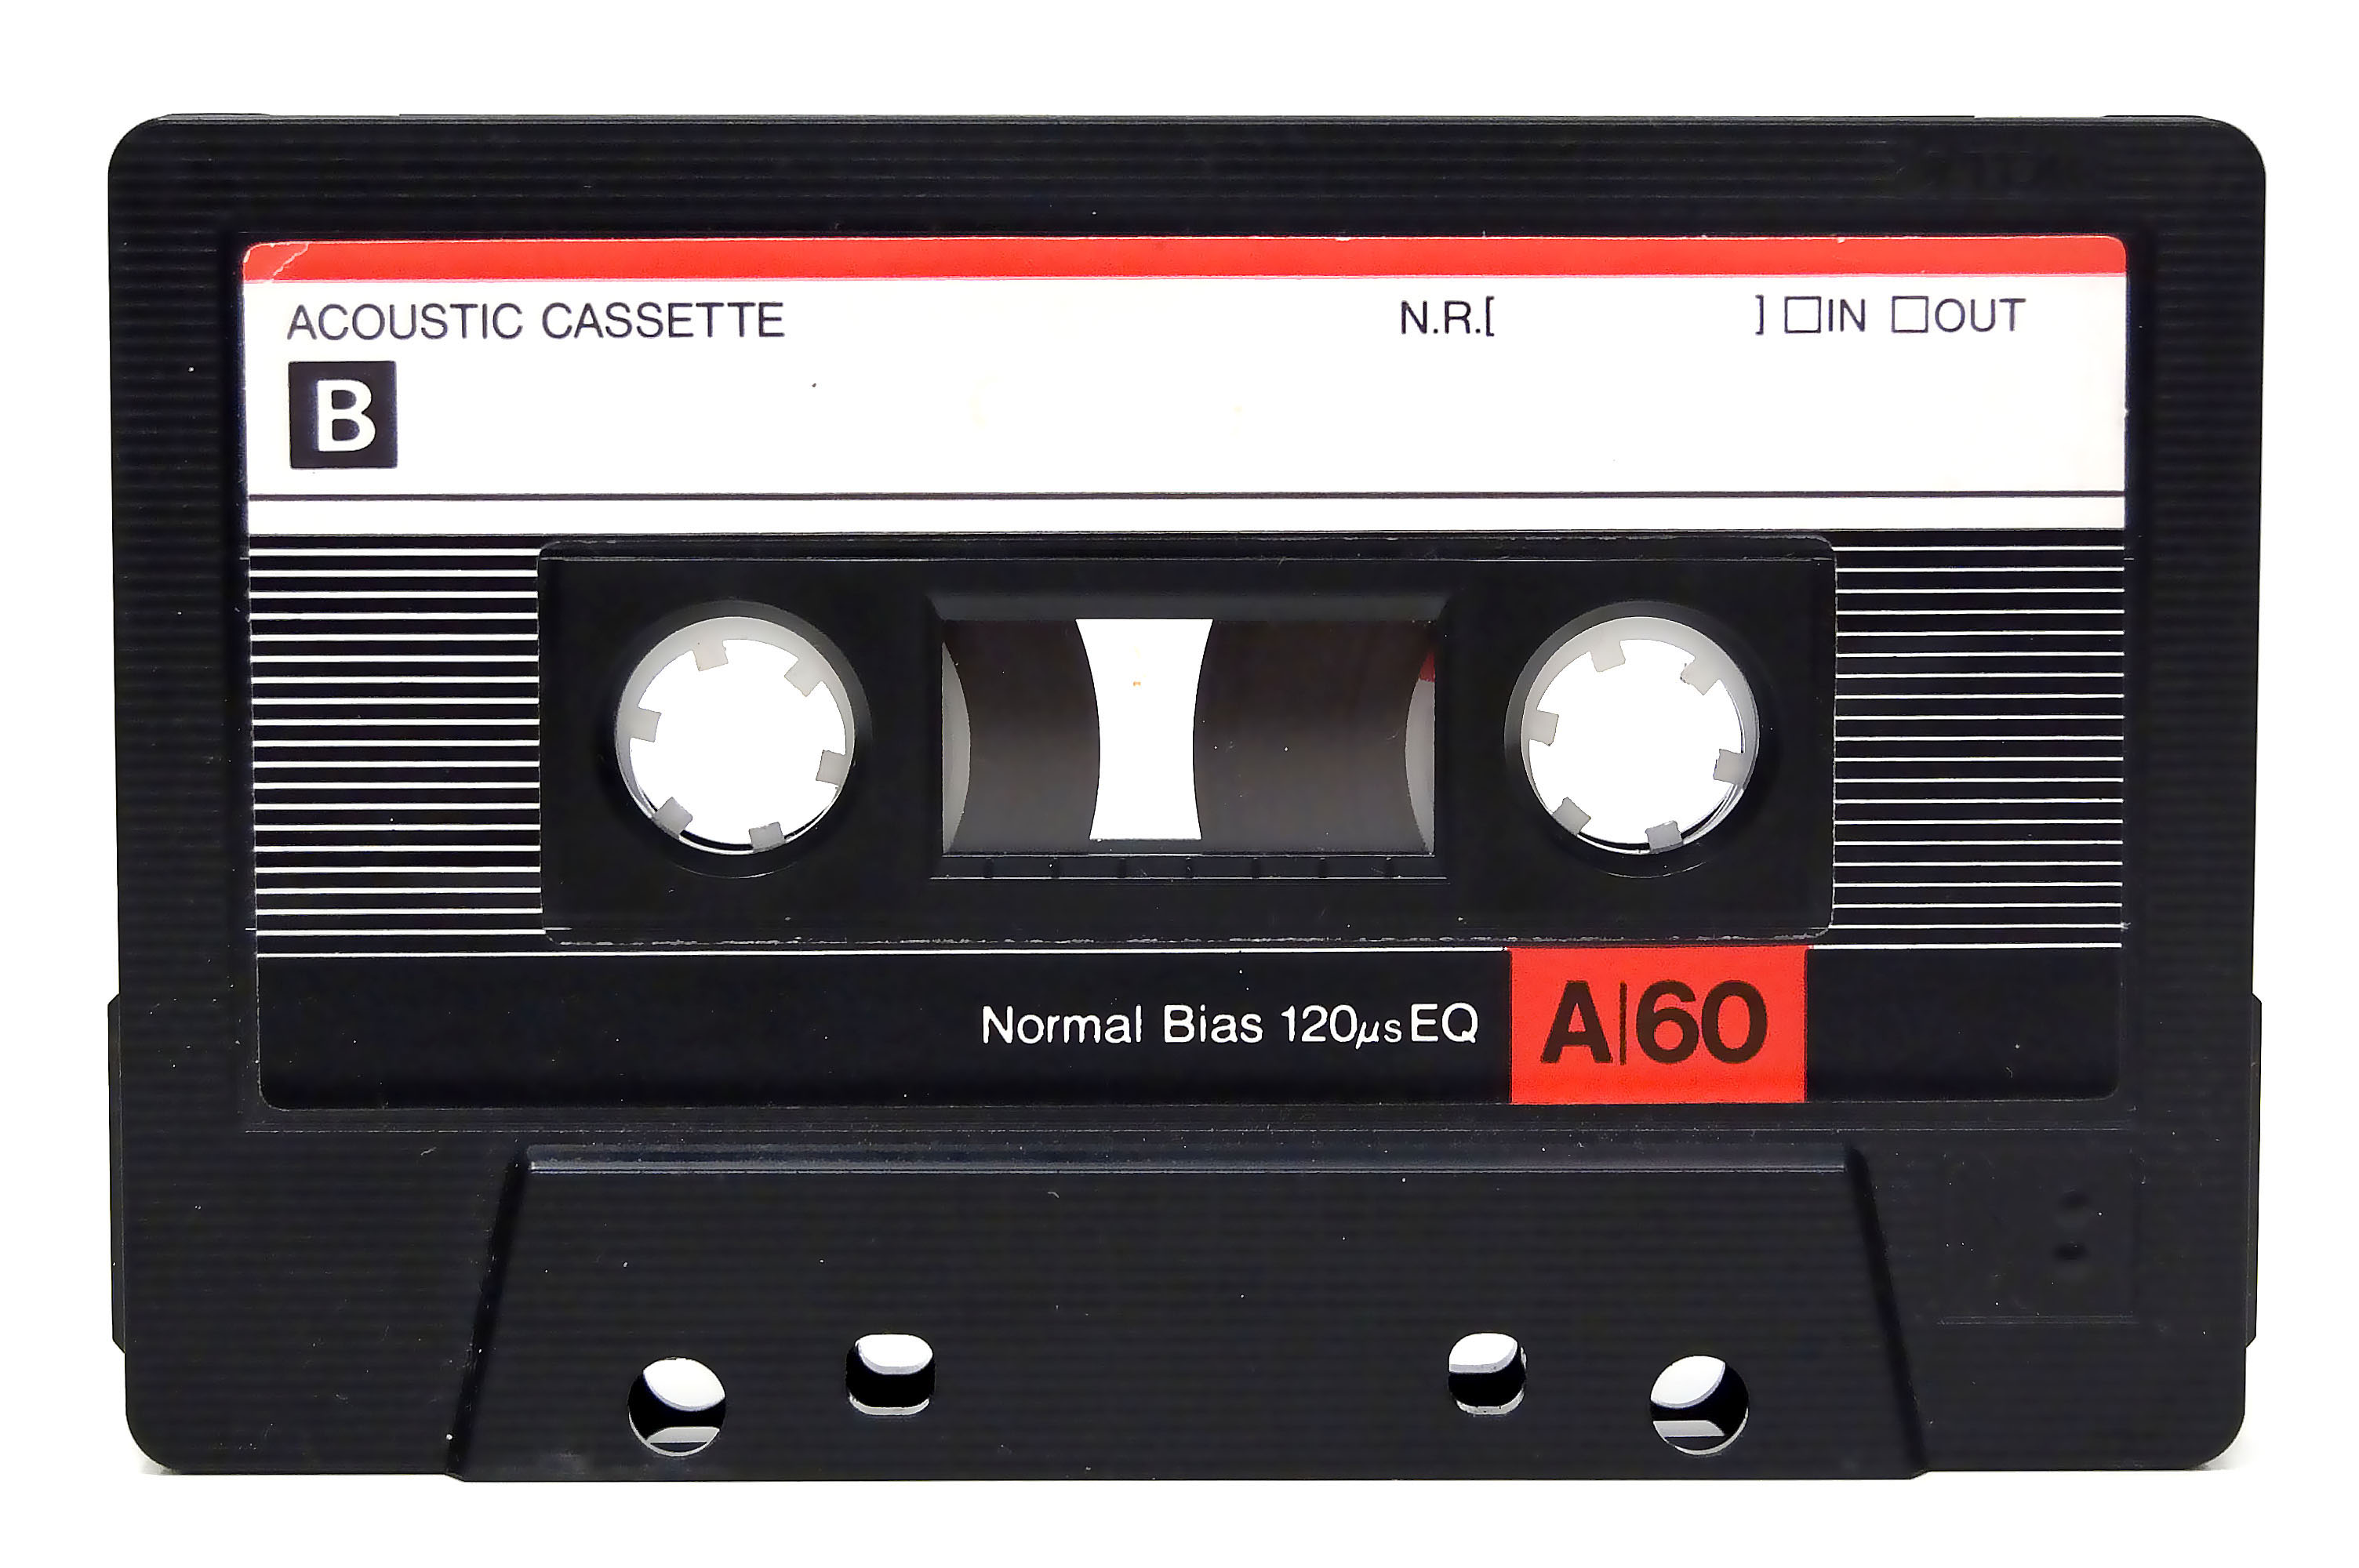 Audio Cassette Tapes - Toss, Keep, or Transfer to Digital?